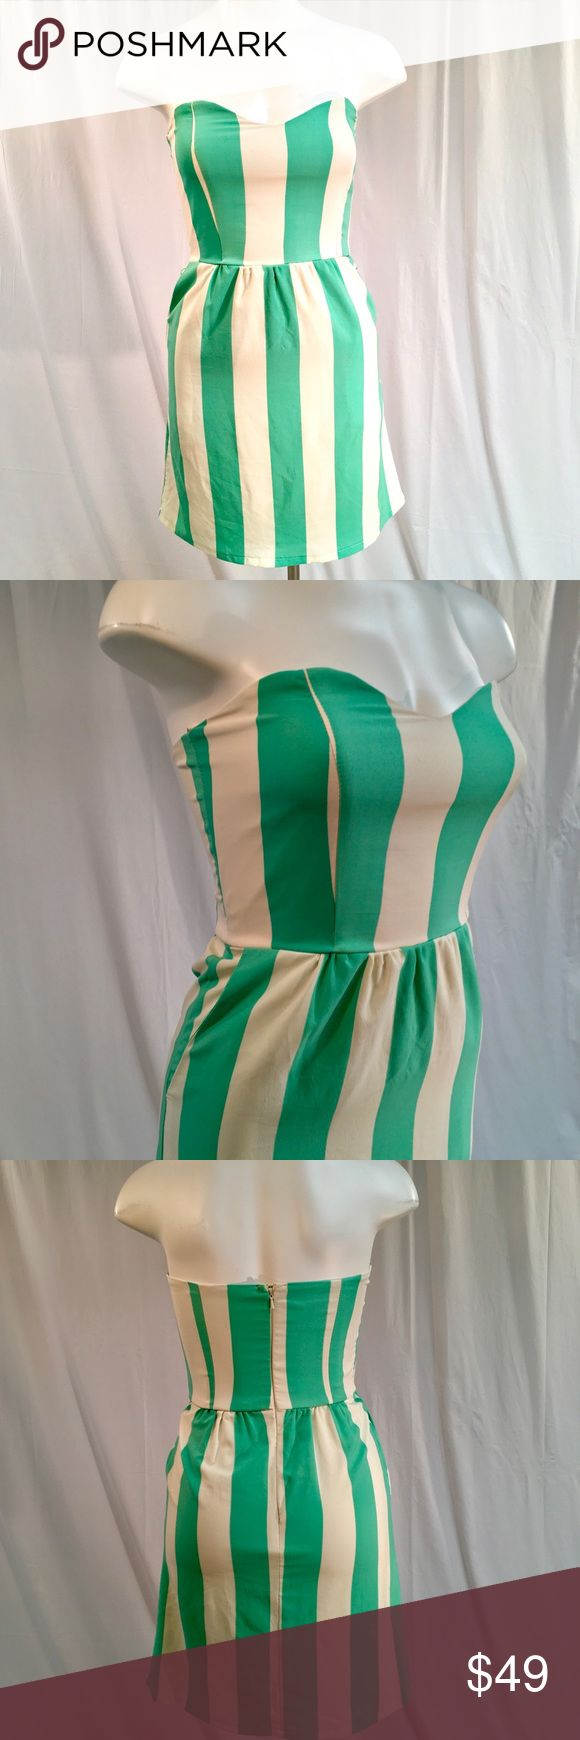 """Judith March Vertical Striped Dress Gorgeous and brand new with tags green and cream vertical stripe dress by Judith March! Has a back center zip closure. Bonding in the bust area. Women's size medium. Overall length is approx 29"""". Judith March Dresses Strapless"""